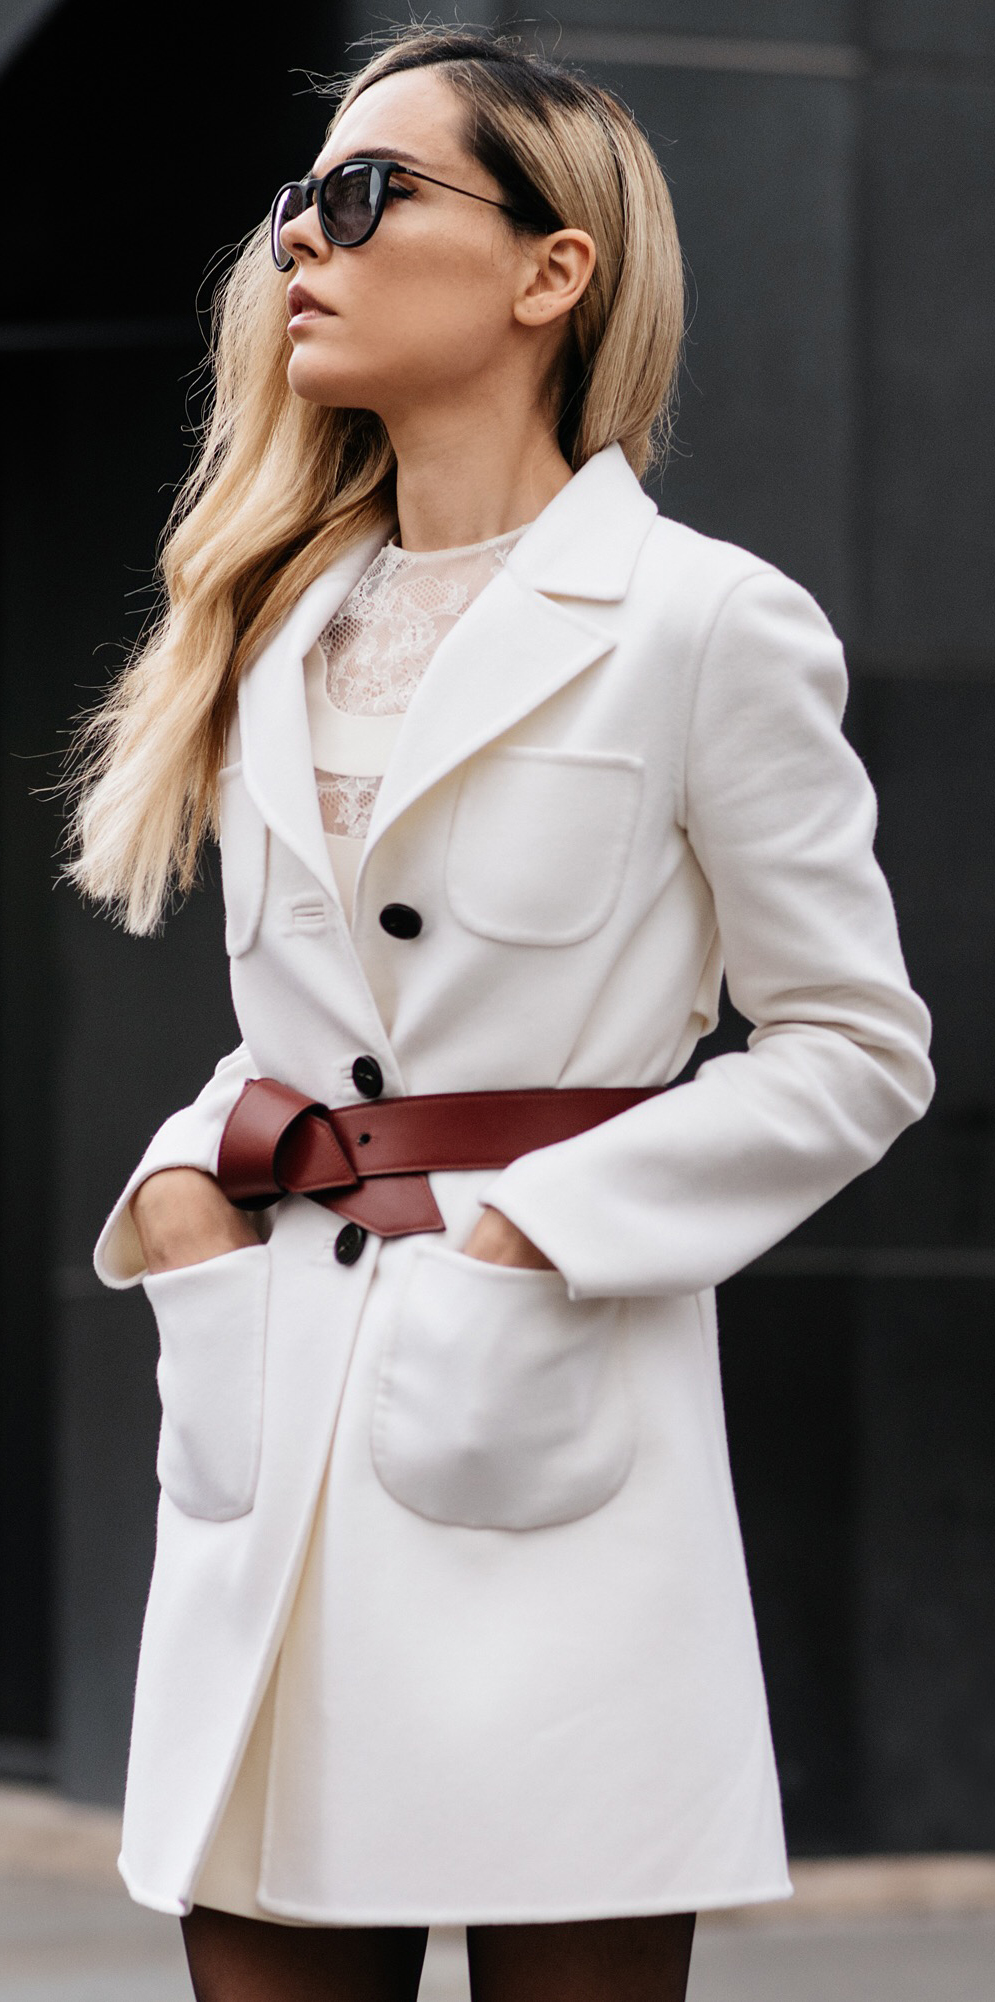 Belt Trend 2015: Evangelie Smyrniotaki is wearing a white lace dress and coat fro Valentino, and the belt is from Louis Vuitton